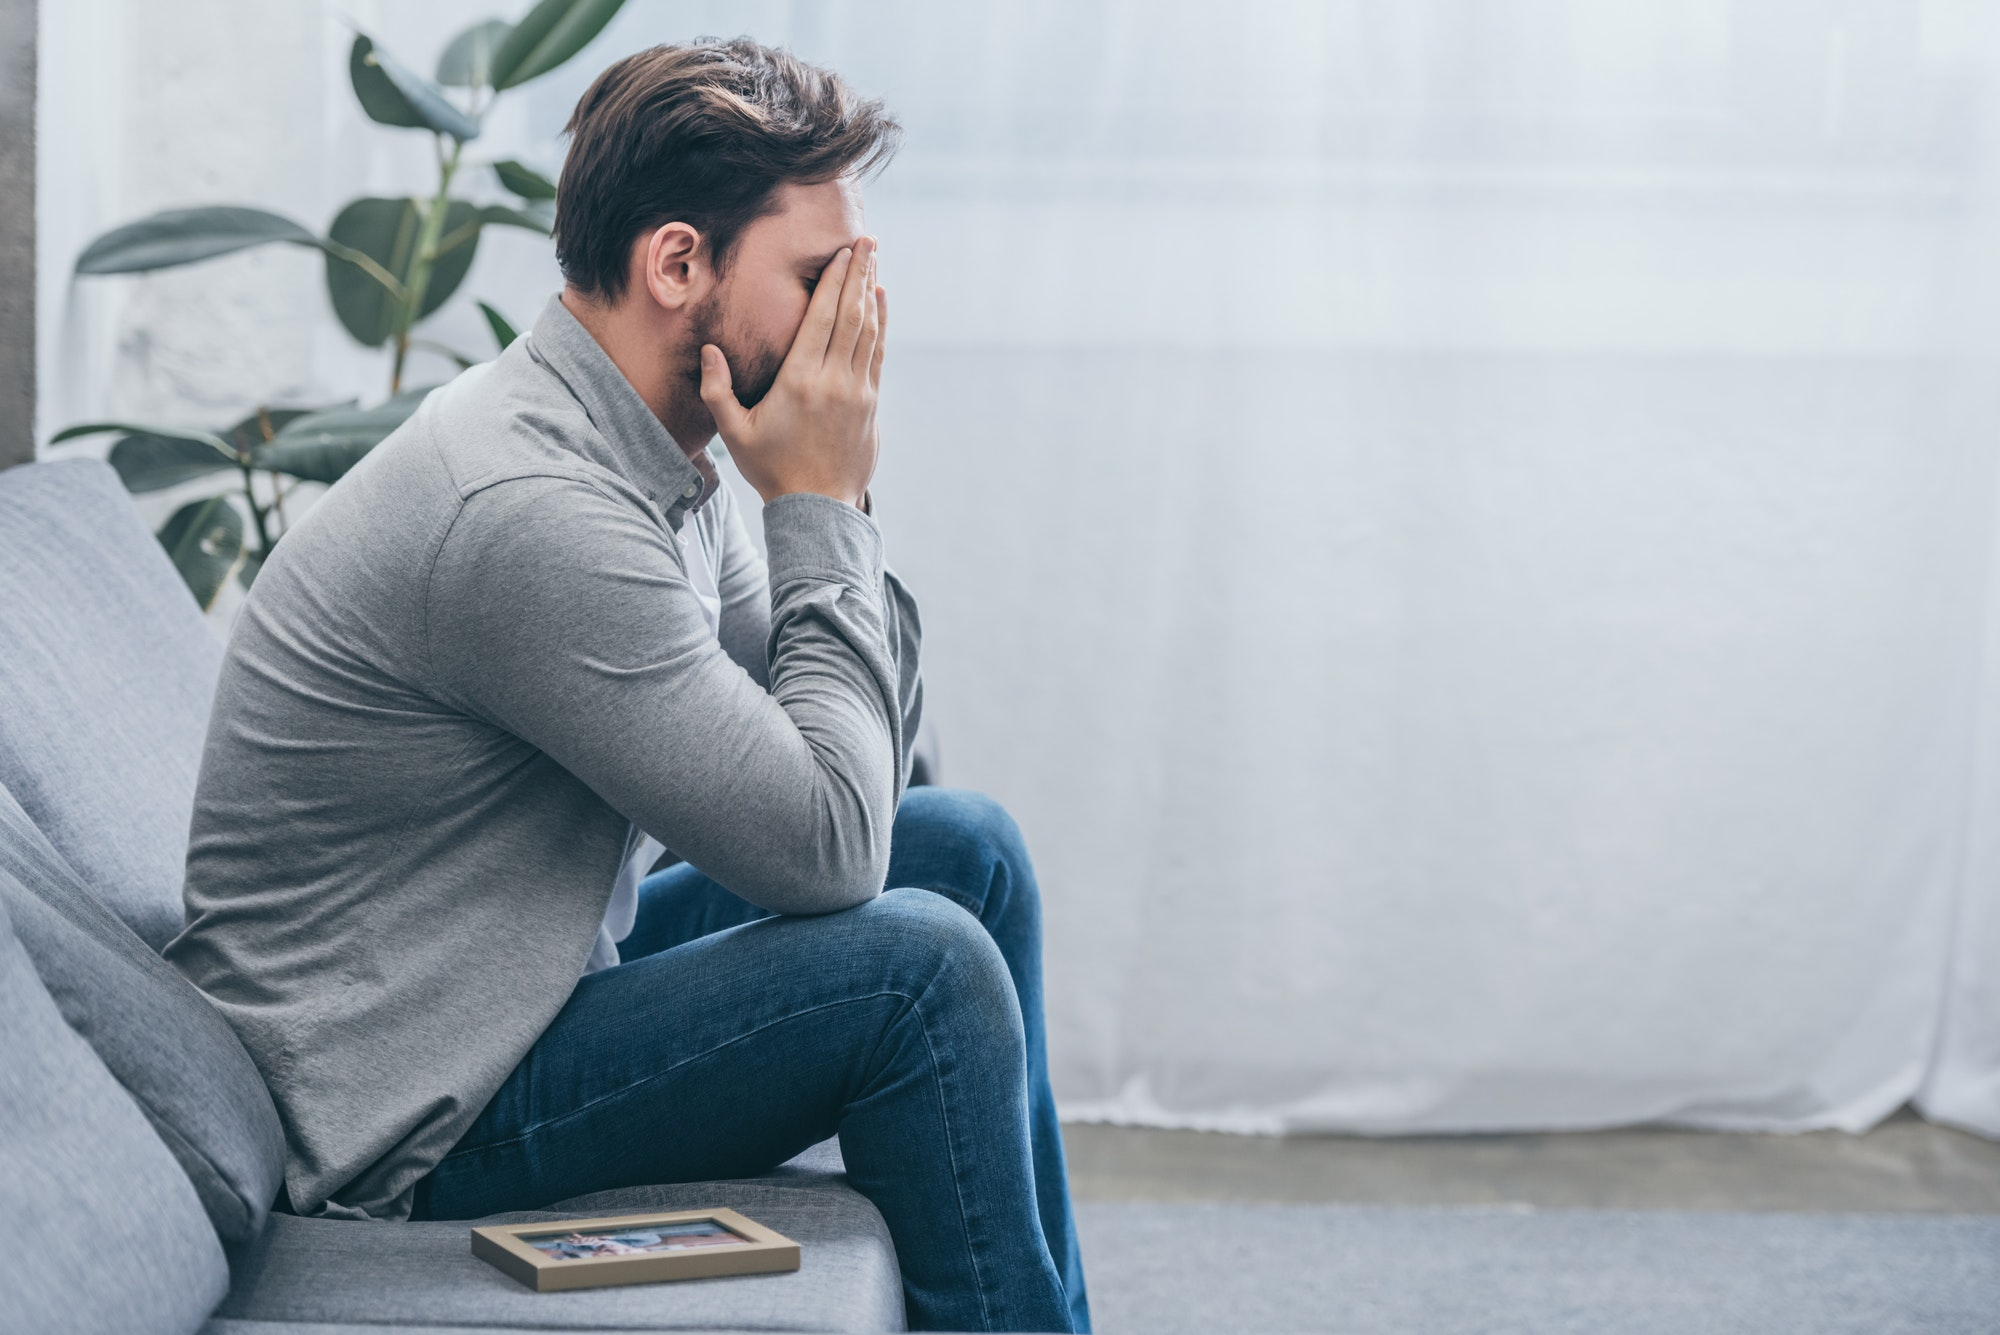 man sitting on grey couch with photo in frame and crying at home, grieving disorder concept